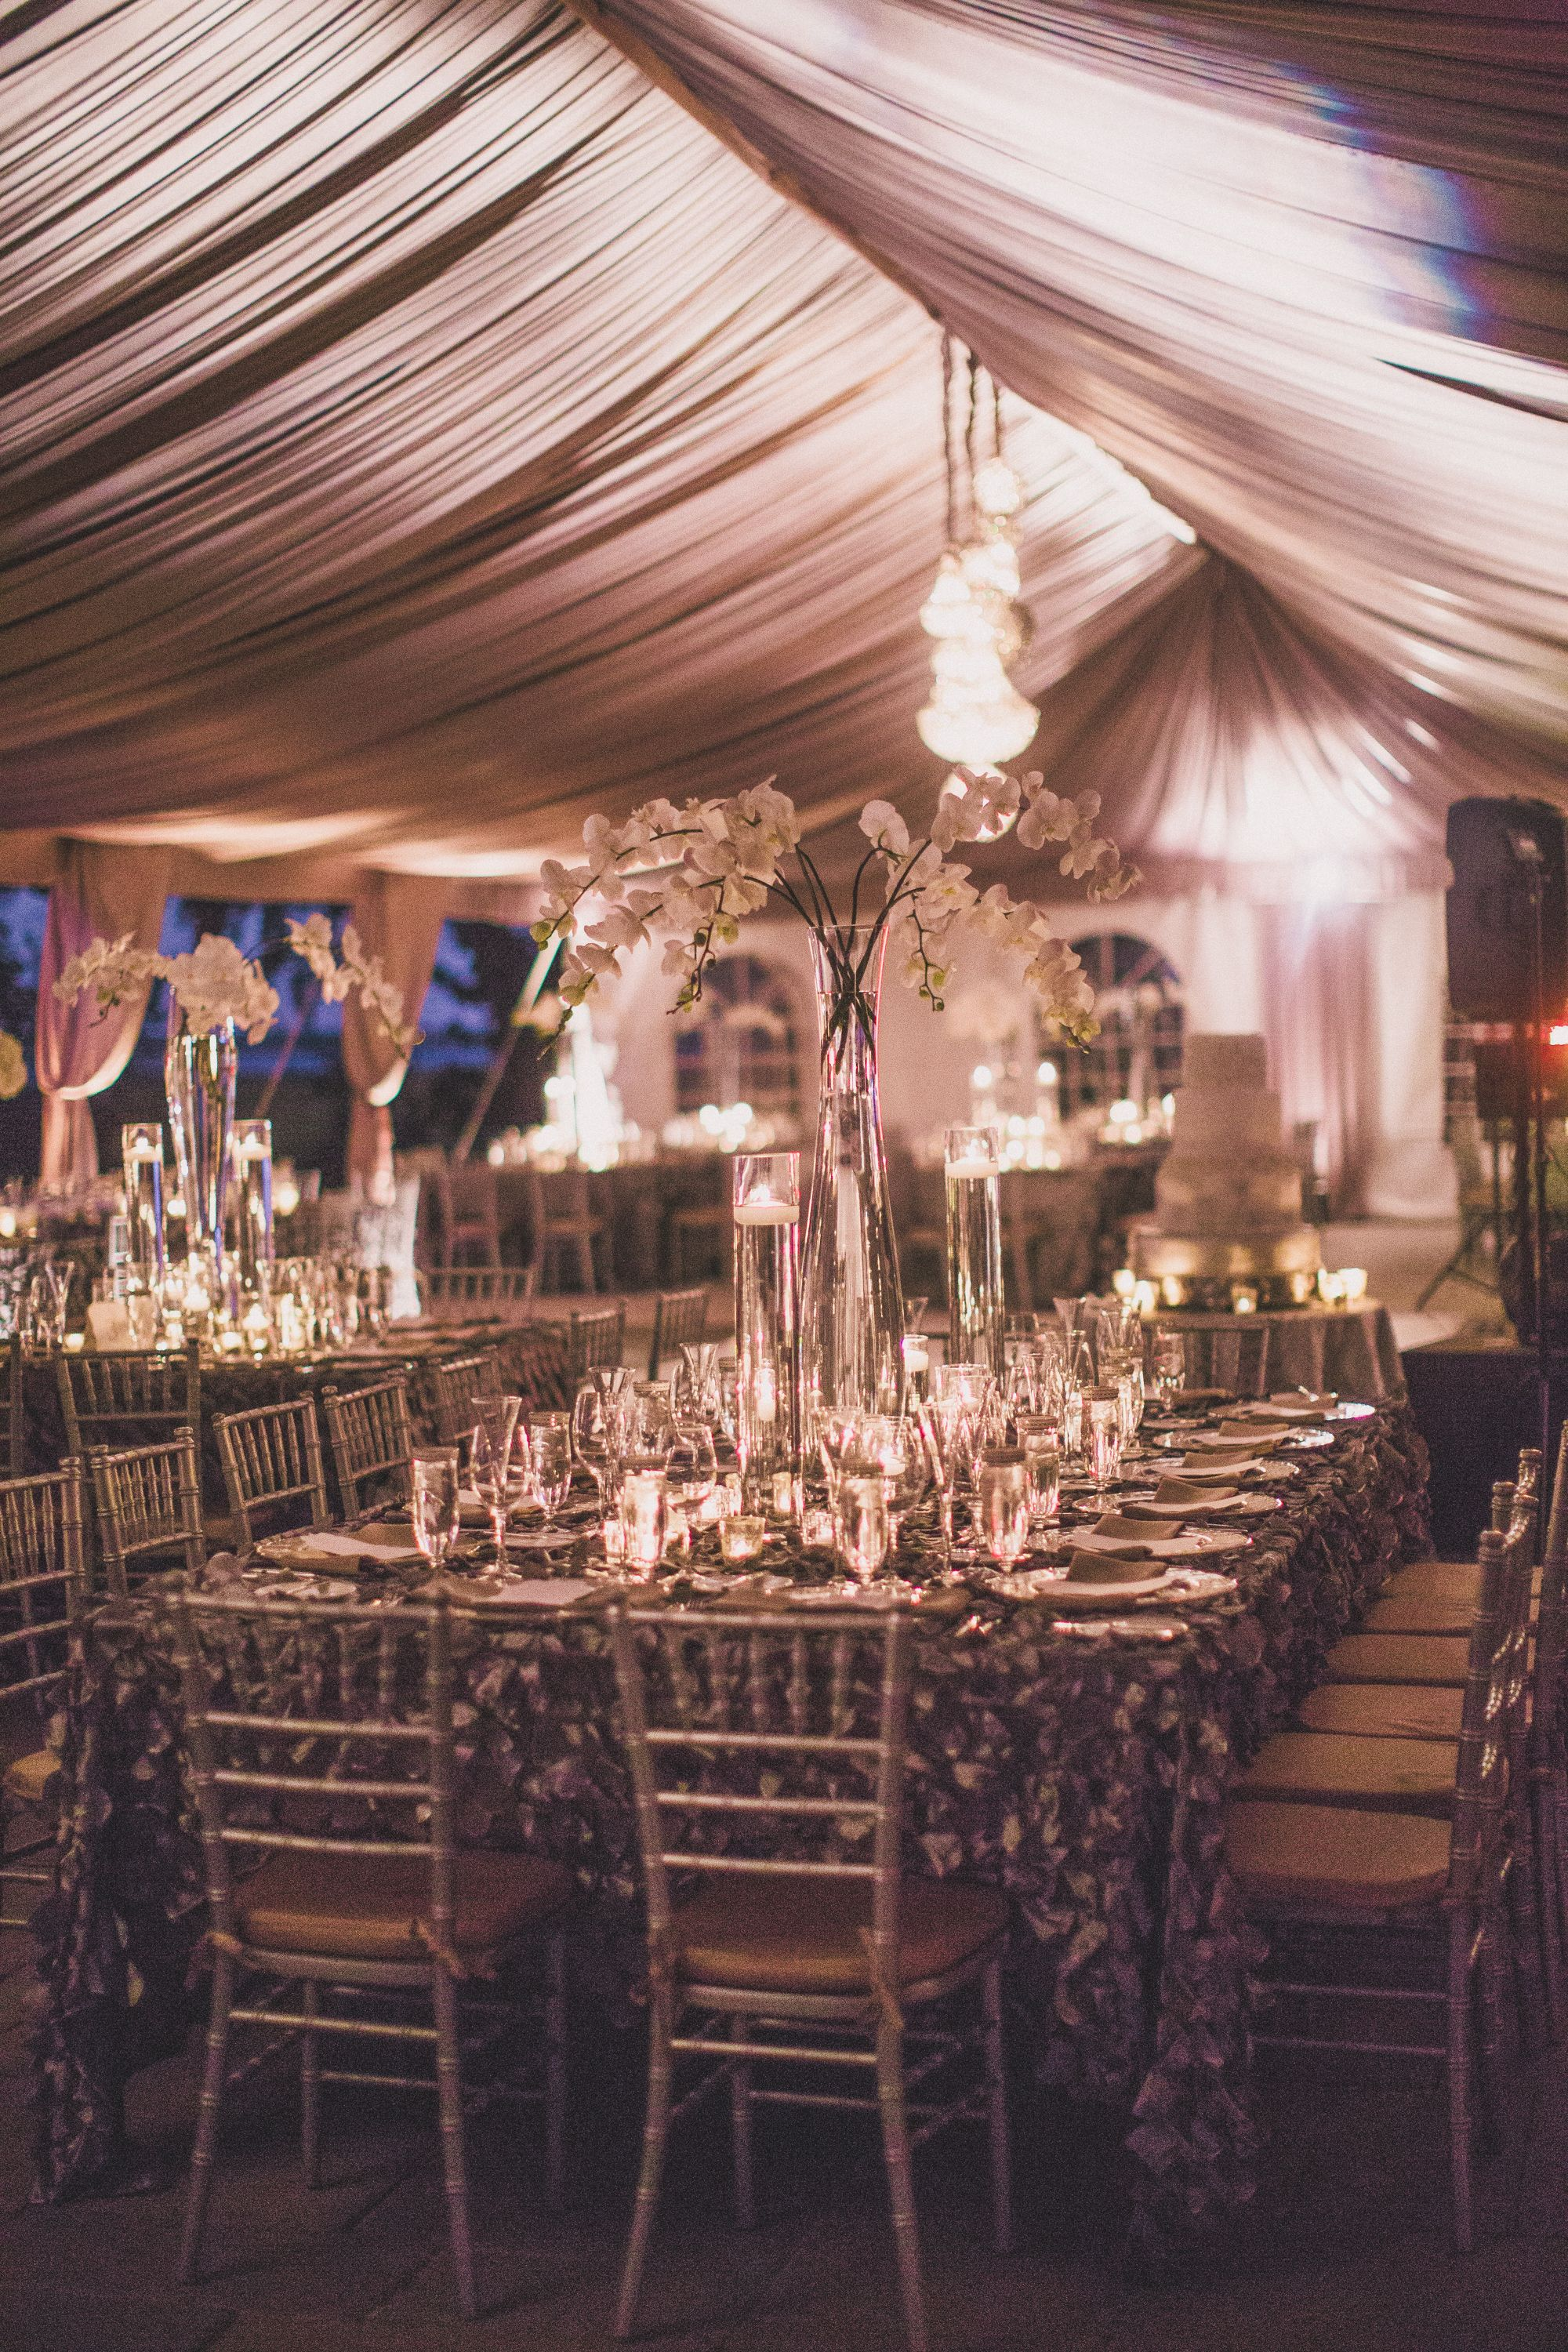 Want Your Tent To Look Luxurious Lighting And Draping Can Do That